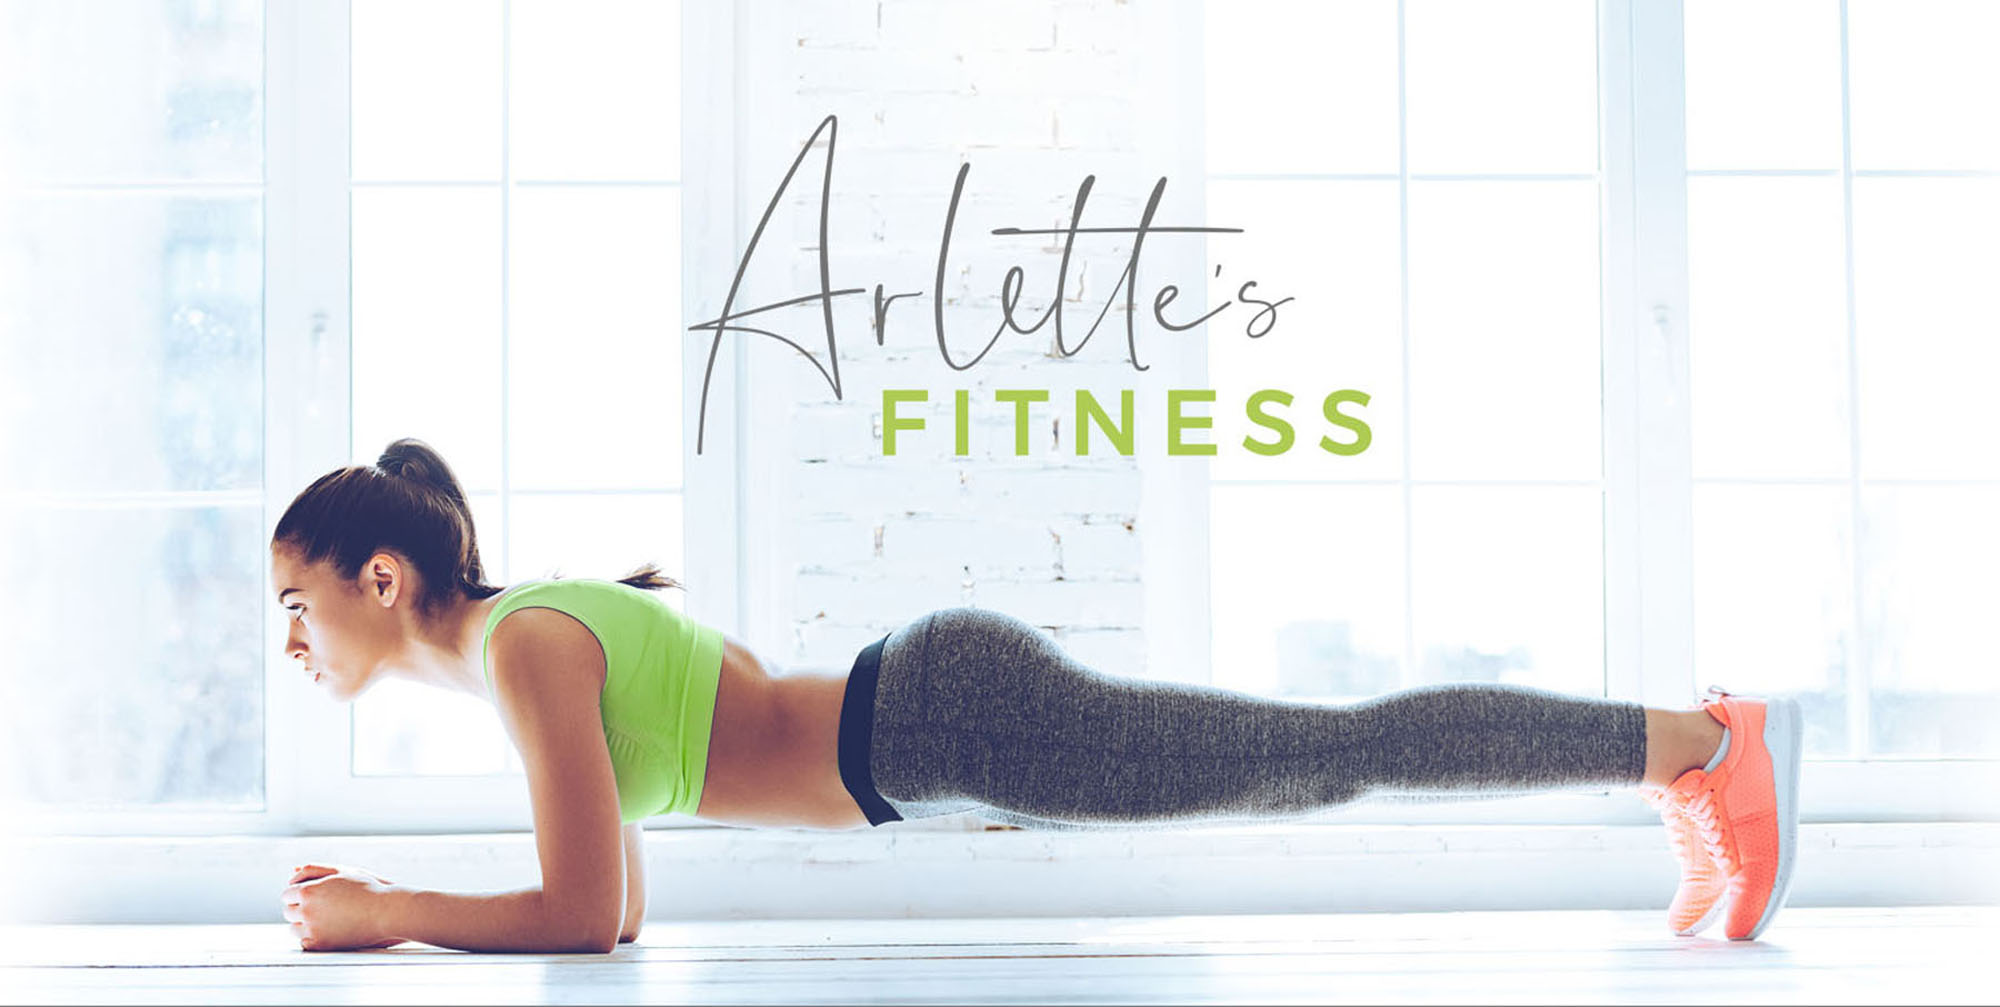 Personal trainer Milton Keynes - Arlette's Fitness in Newport Pagnell